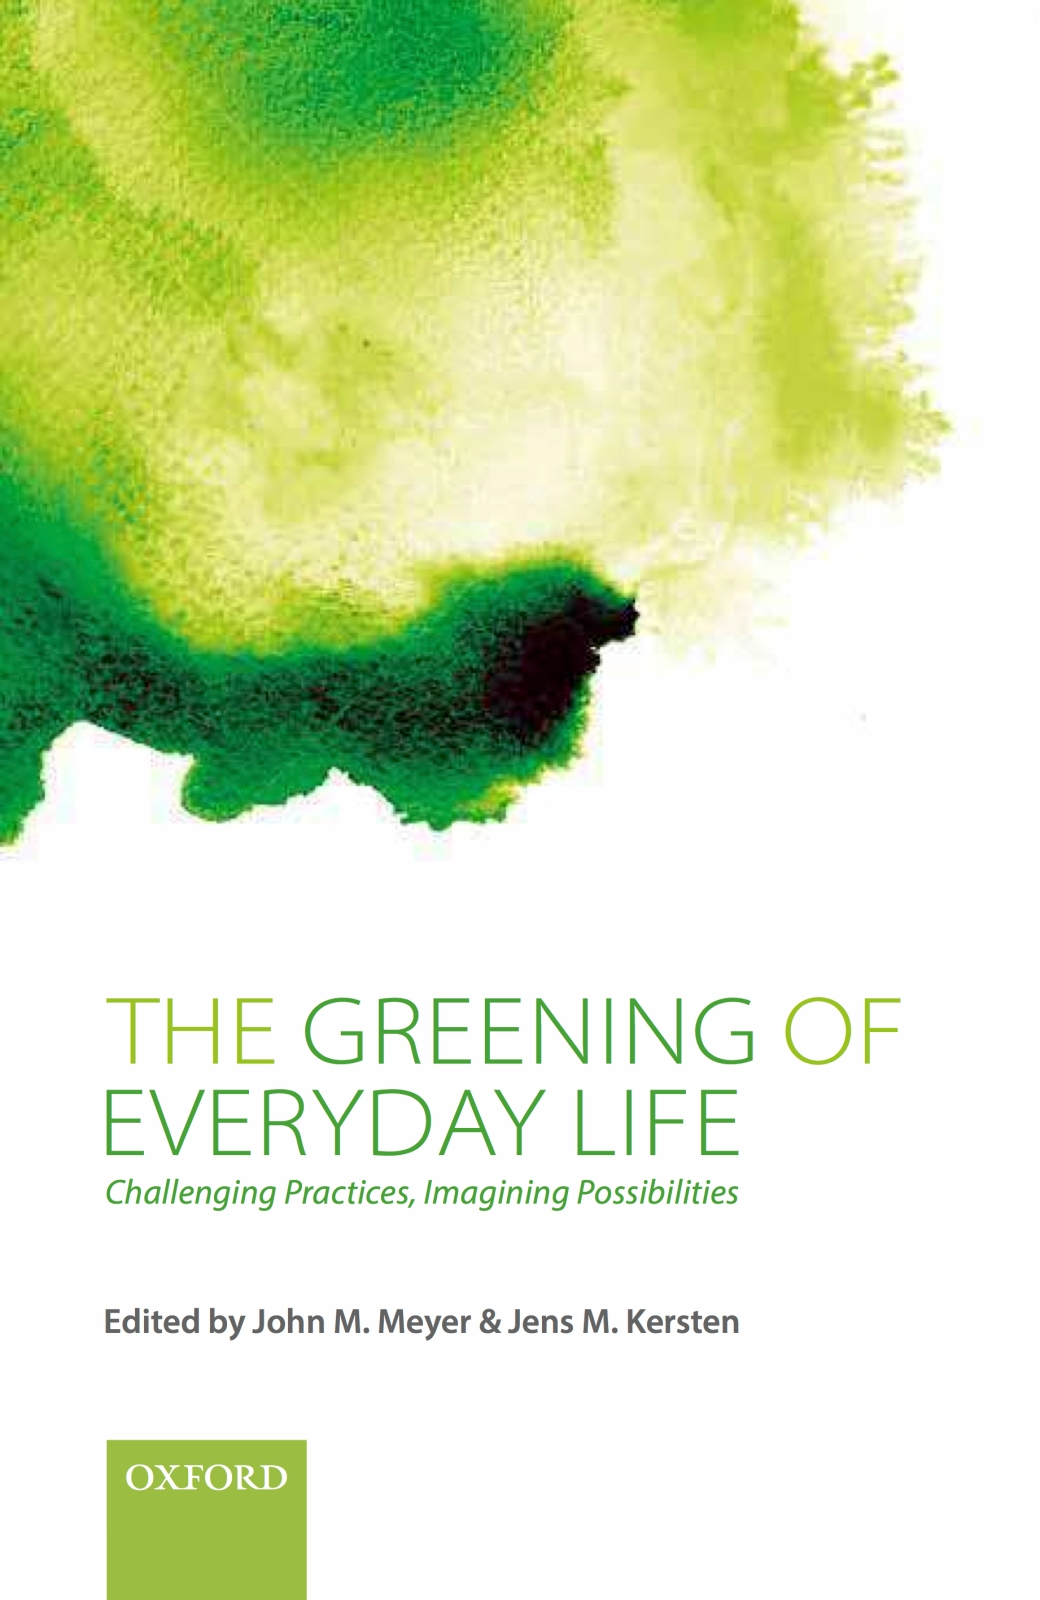 greening-of-everyday-life